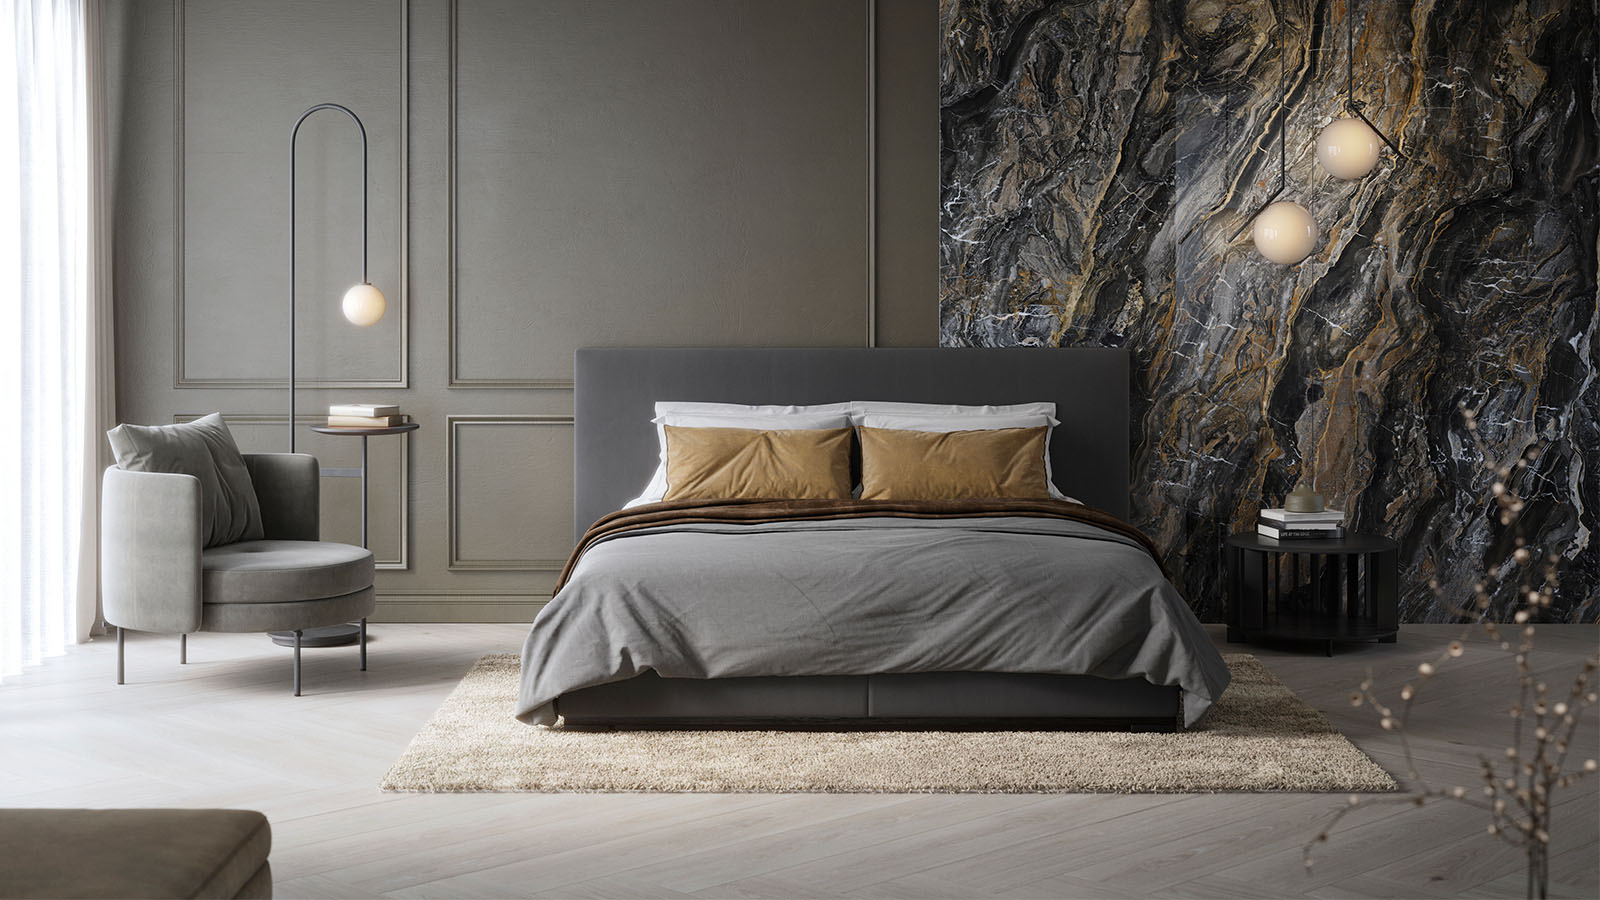 5 grey bedroom décor ideas to dream about